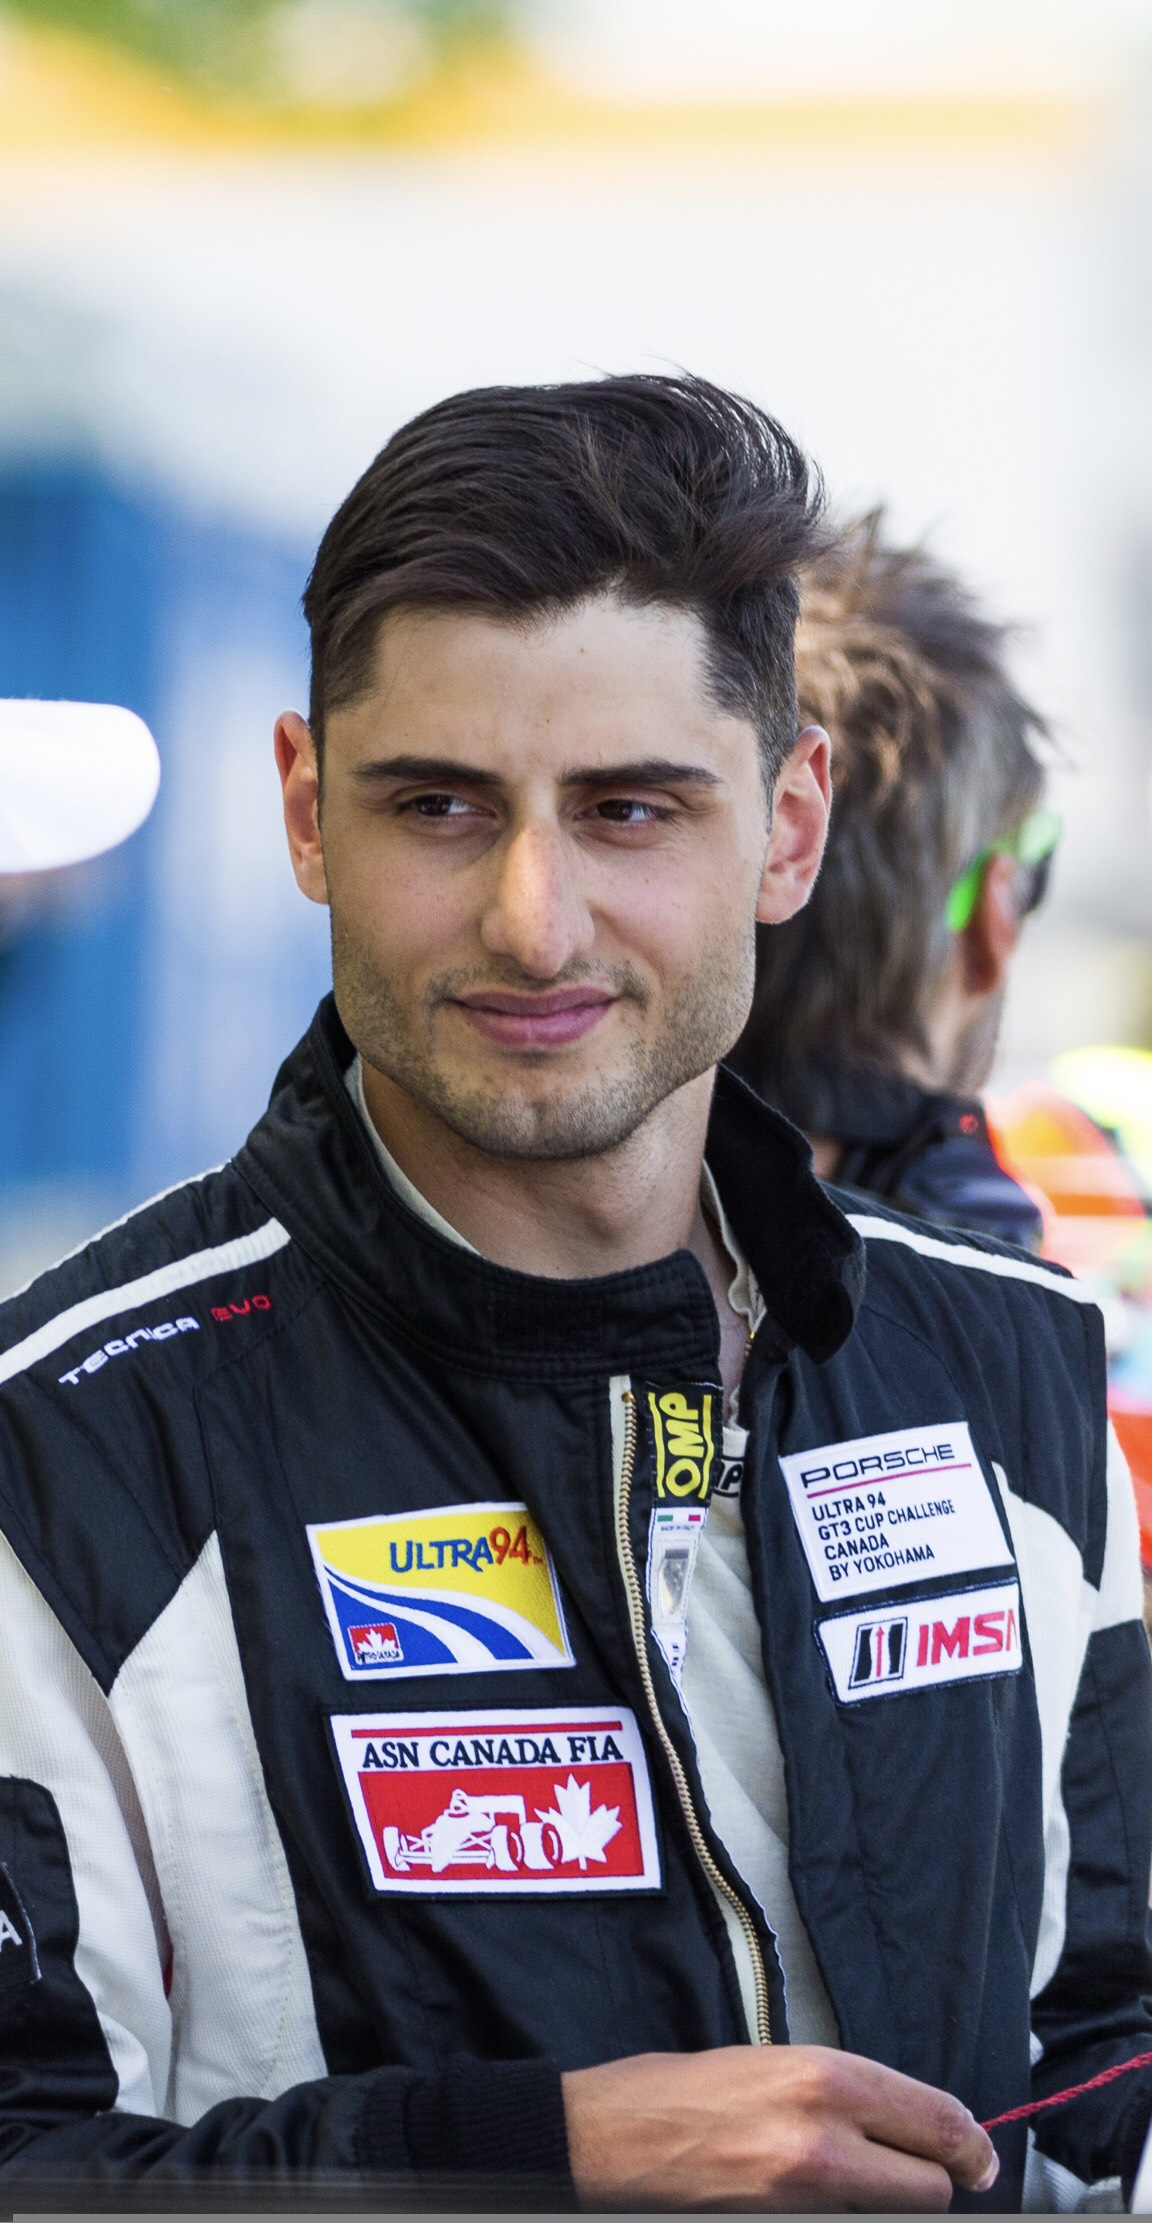 Race car driver, Michael Di Meo to compete with OpenRoad Racing in the 2019 Porsche GT3 Cup Challenge Canada.